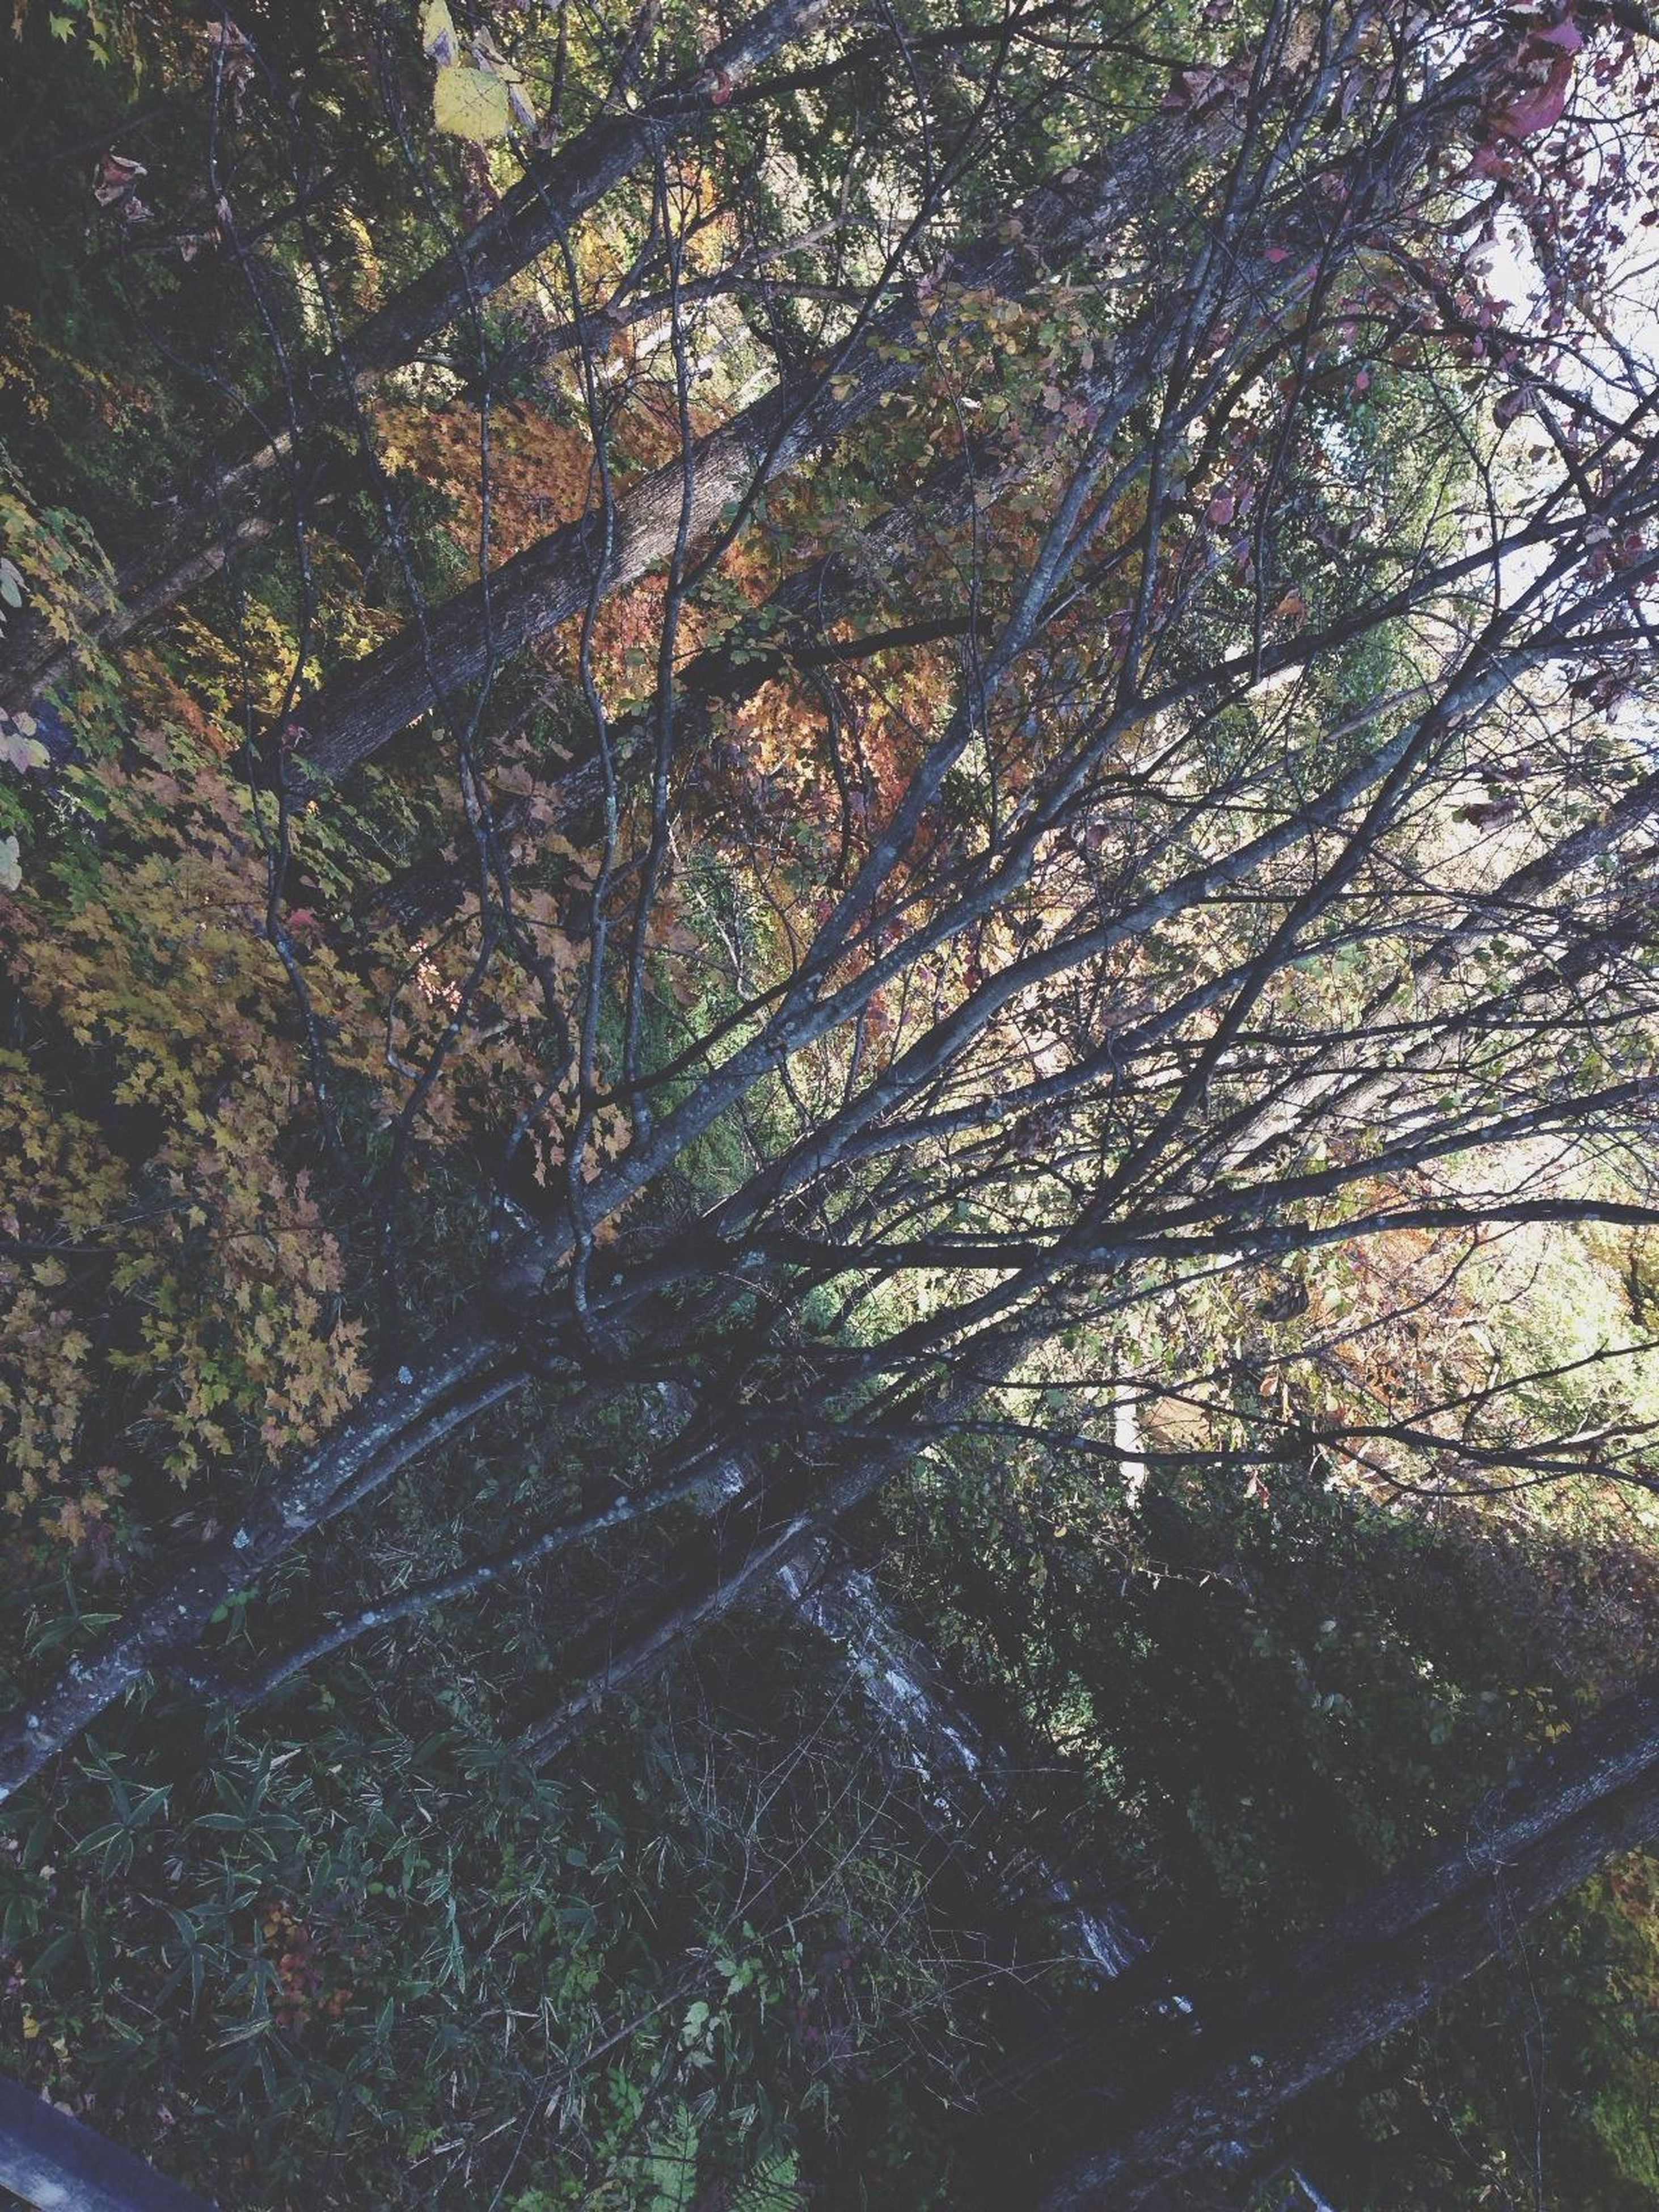 tree, growth, branch, nature, tranquility, tree trunk, sunlight, beauty in nature, forest, day, outdoors, no people, park - man made space, tranquil scene, low angle view, scenics, green color, built structure, shadow, autumn